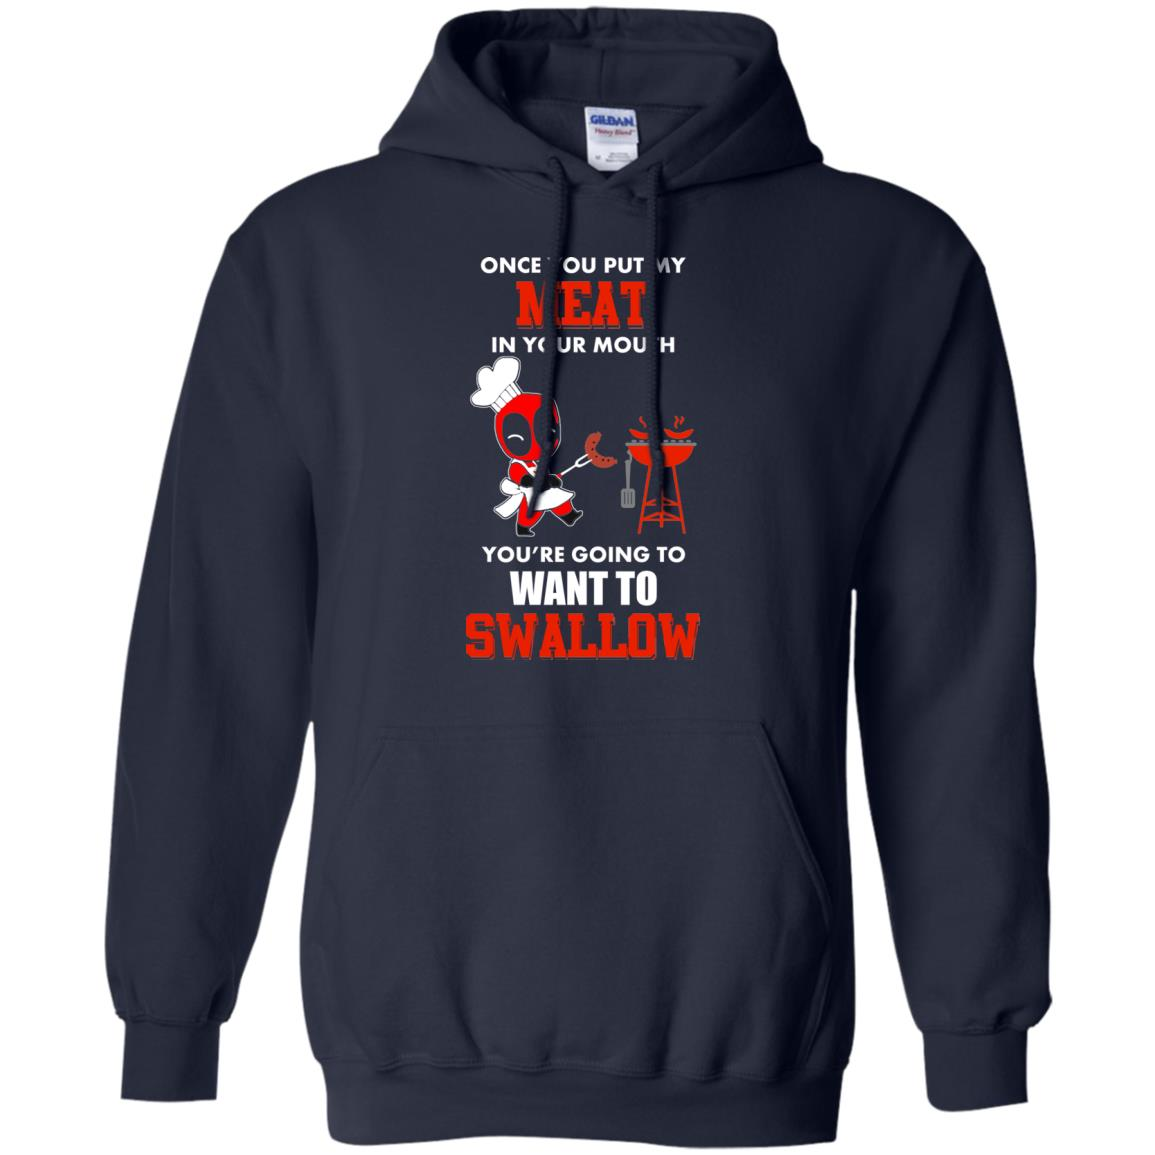 image 563px Once you put my meat in your mouth you are going to want to swallow shirt, hoodies, tank